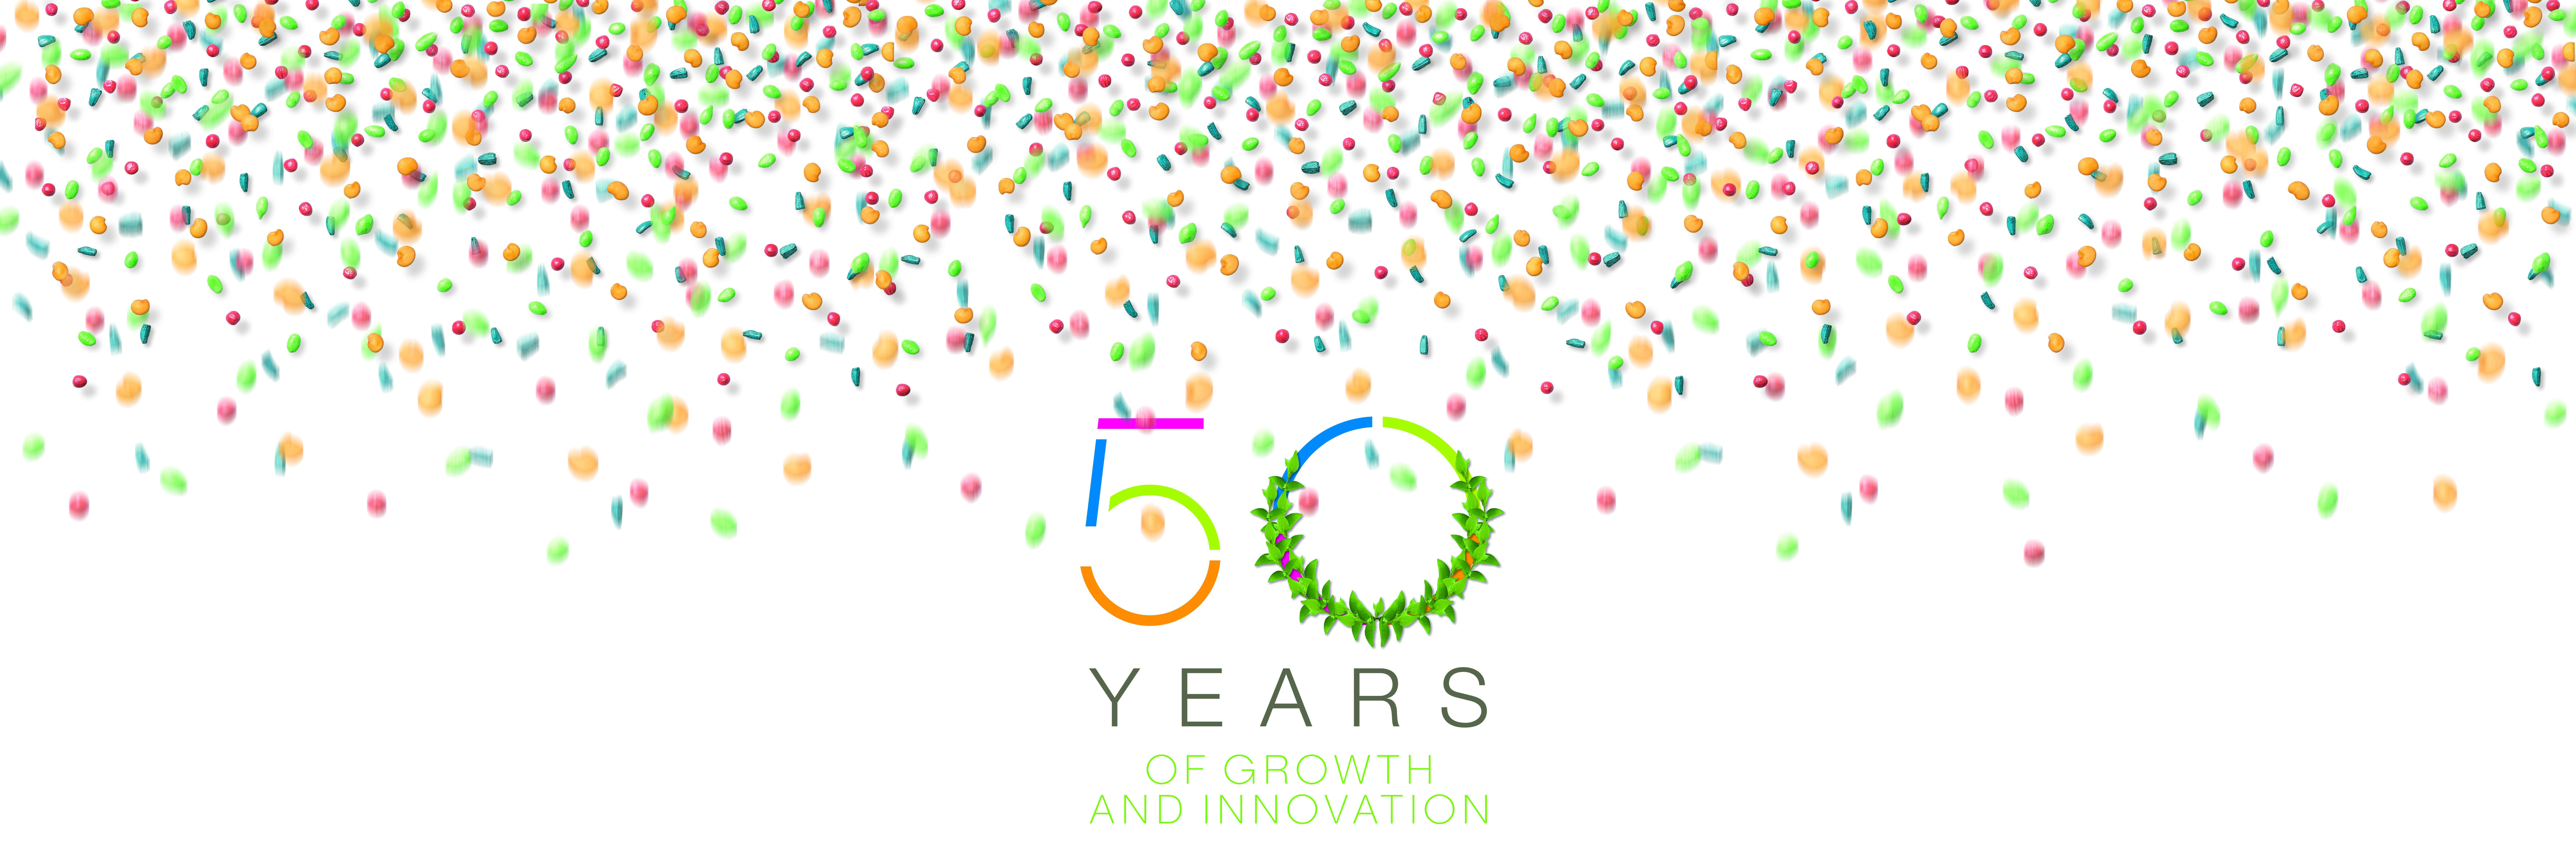 50 years of growth and innovation